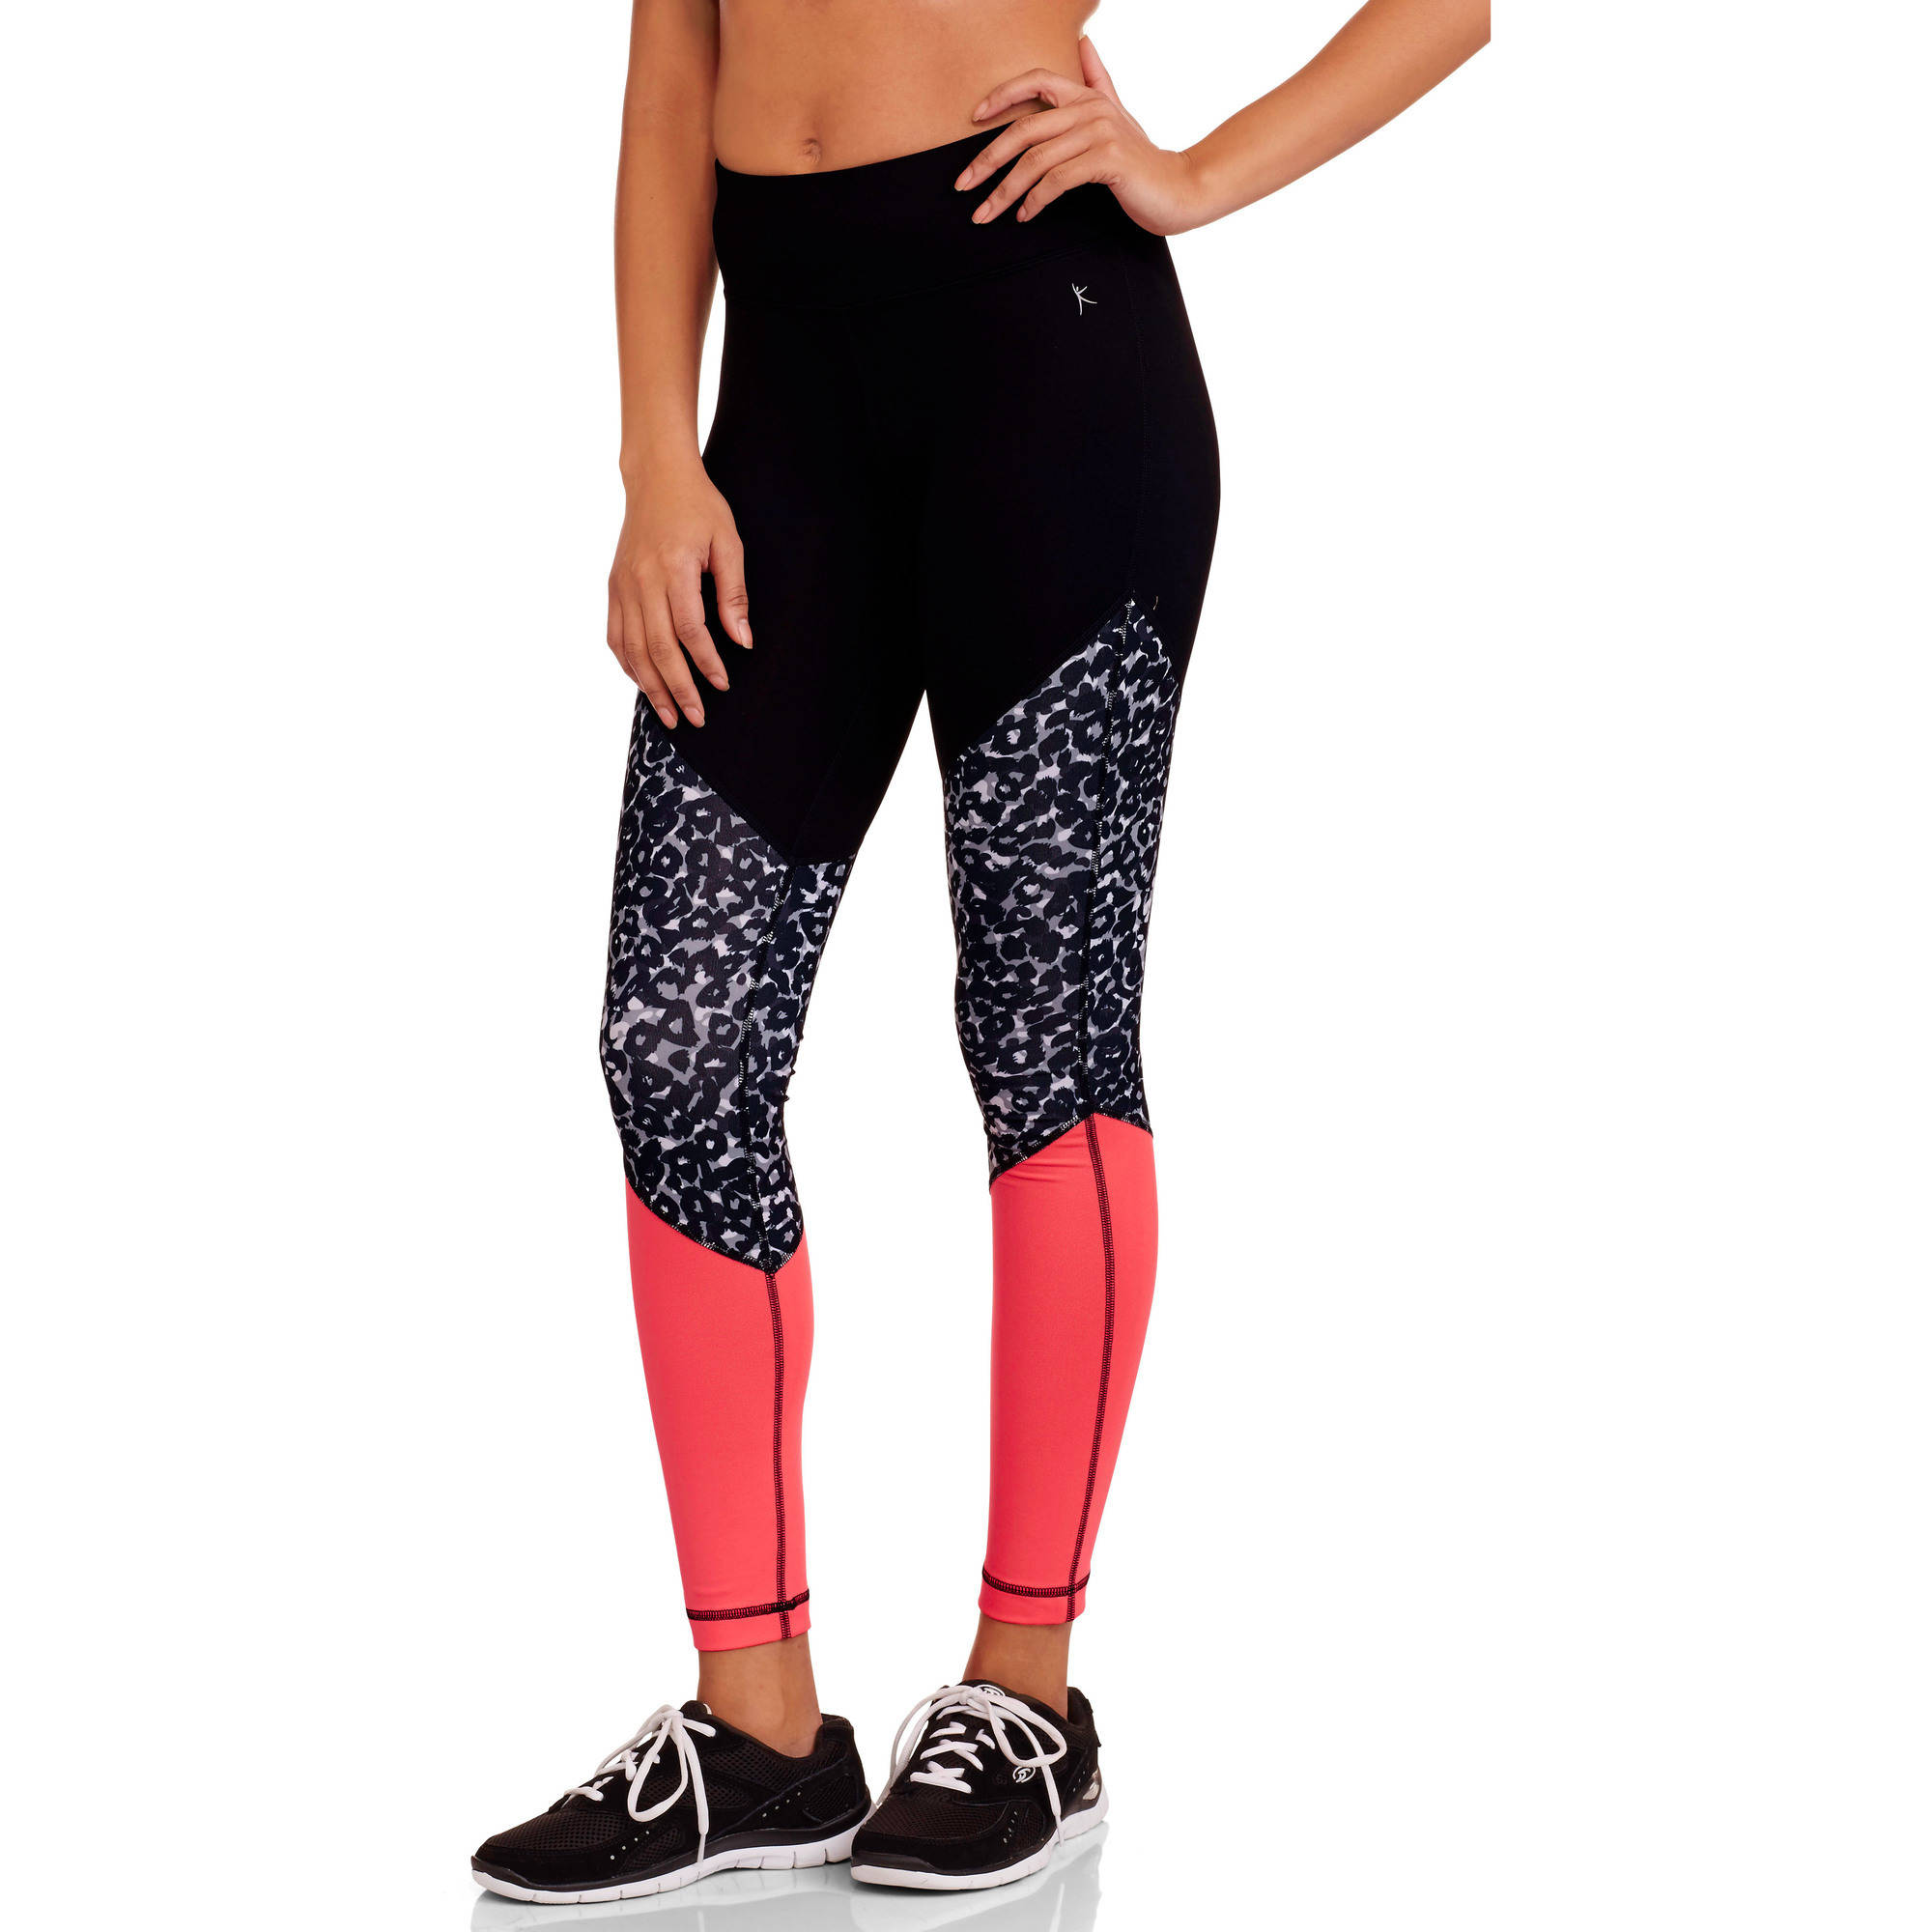 Danskin Now Juniors' Active Hidden Jungle Printed Performance Ankle Leggings